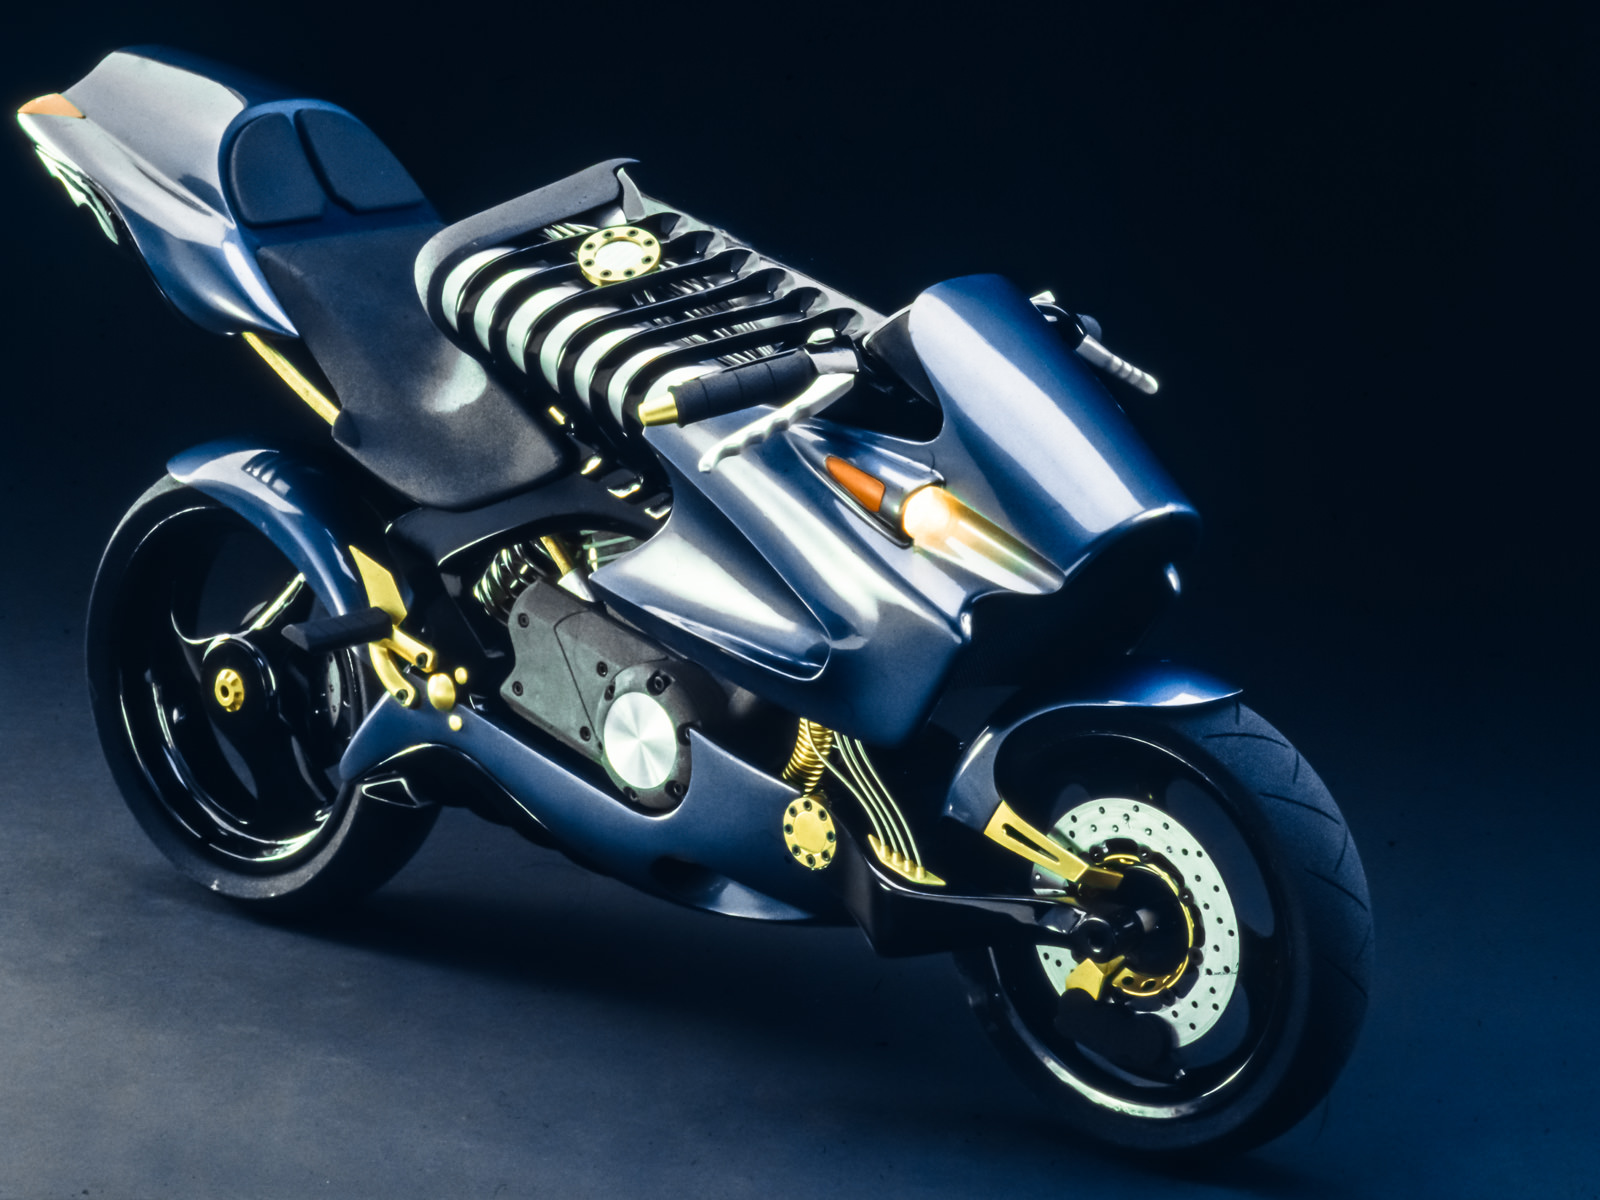 Final finished scale model of the metallic blue and gold accented H2 motorcycle